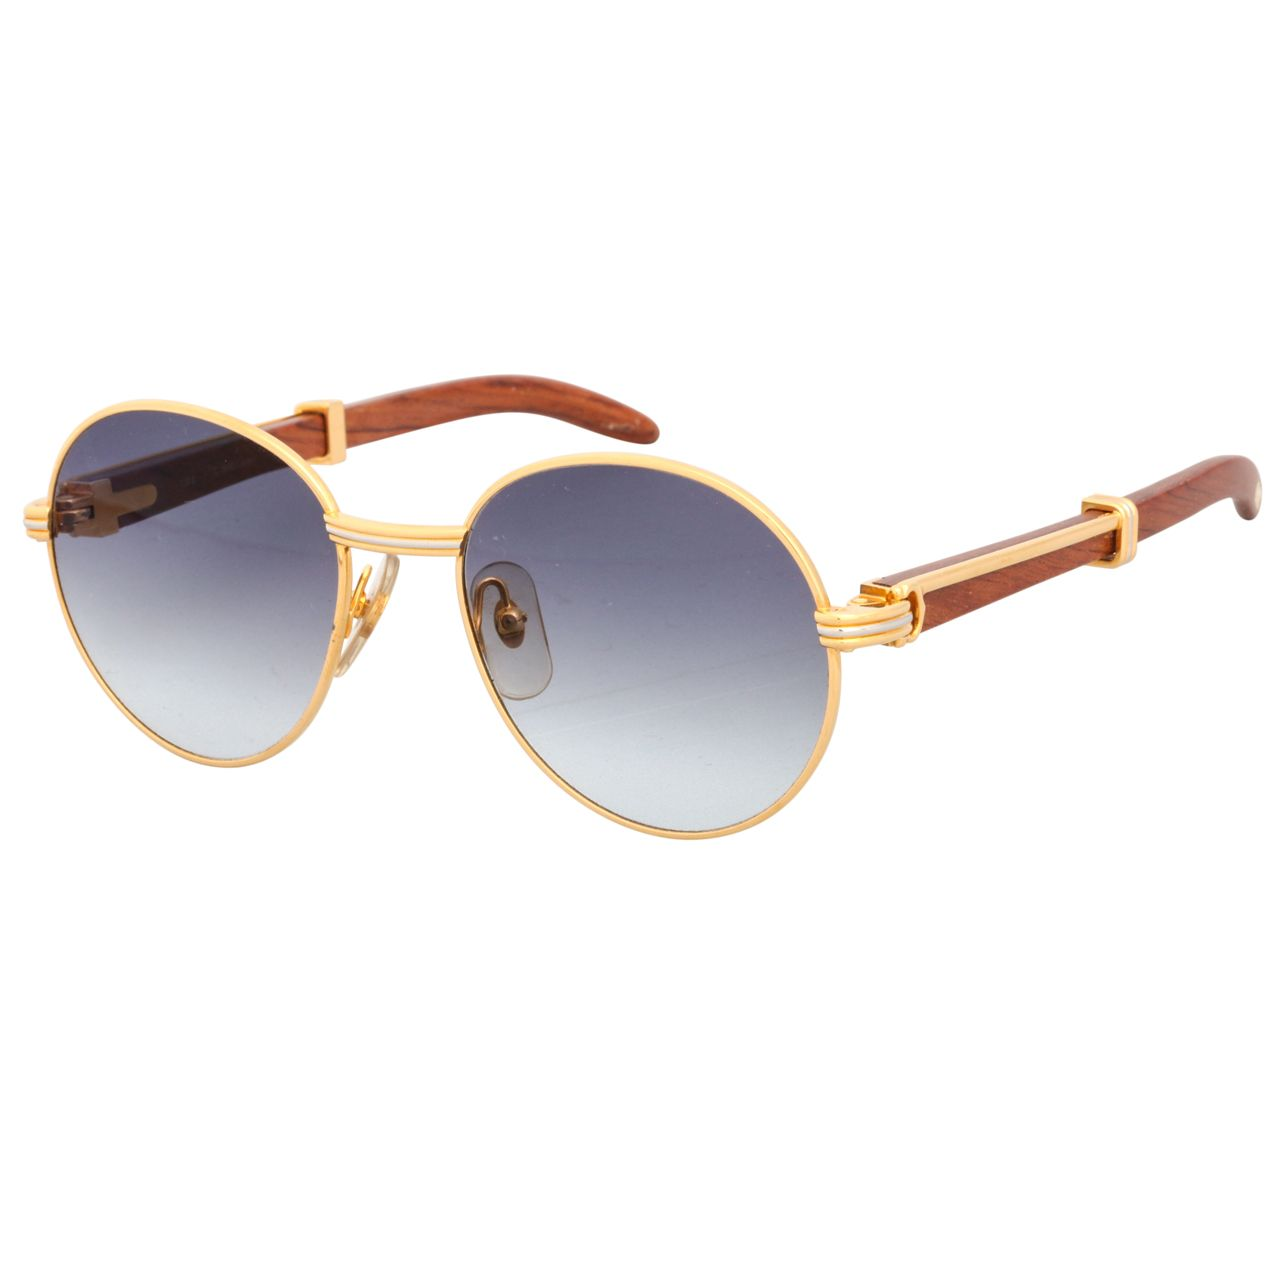 27d70c329c Cartier Bagatelle Palisander Sunglasses | From a collection of rare vintage  sunglasses at http:/